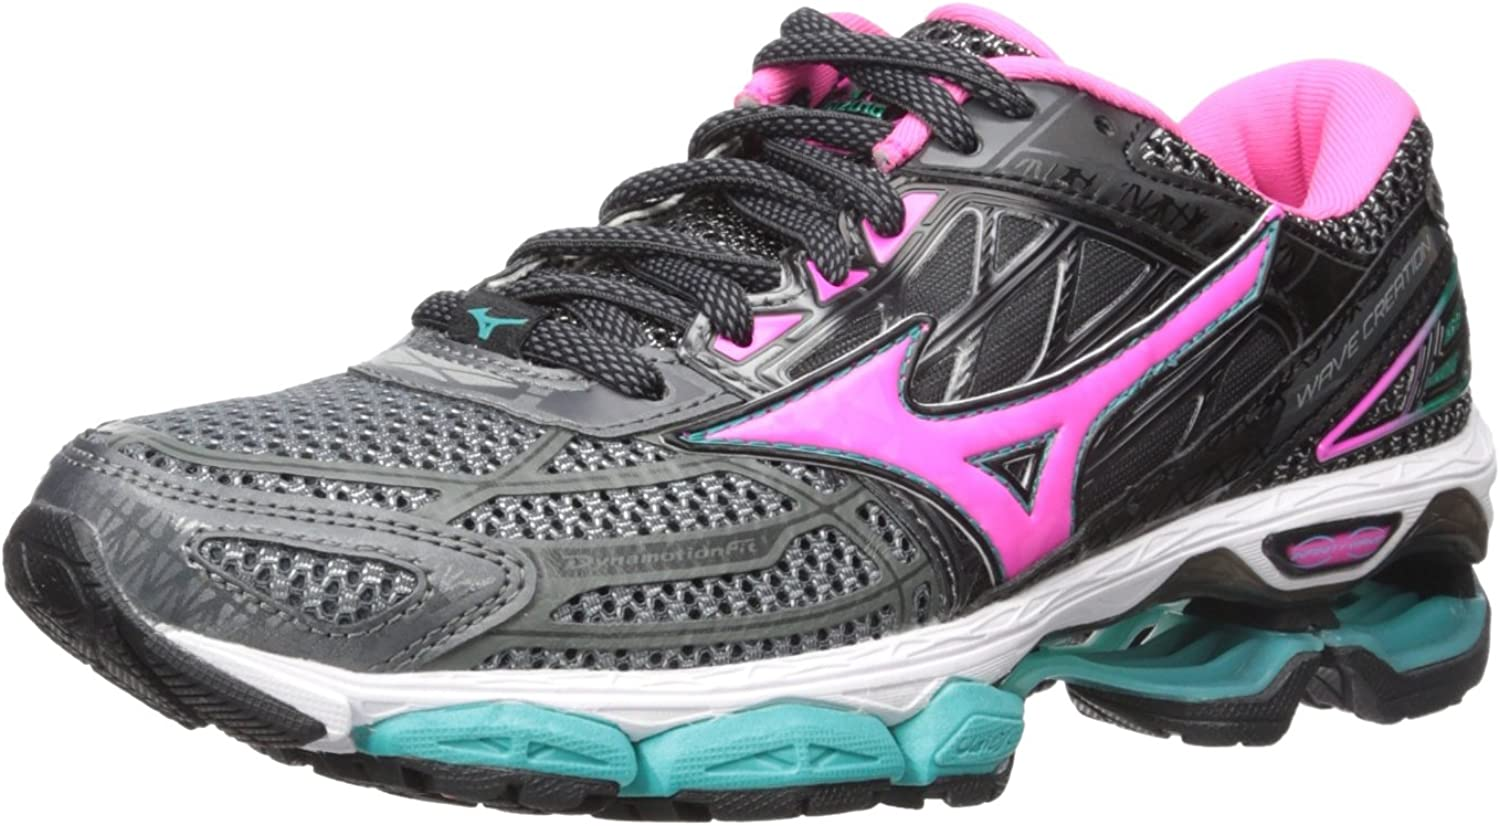 Mizuno Wave Creation 19 shoes Women's Running